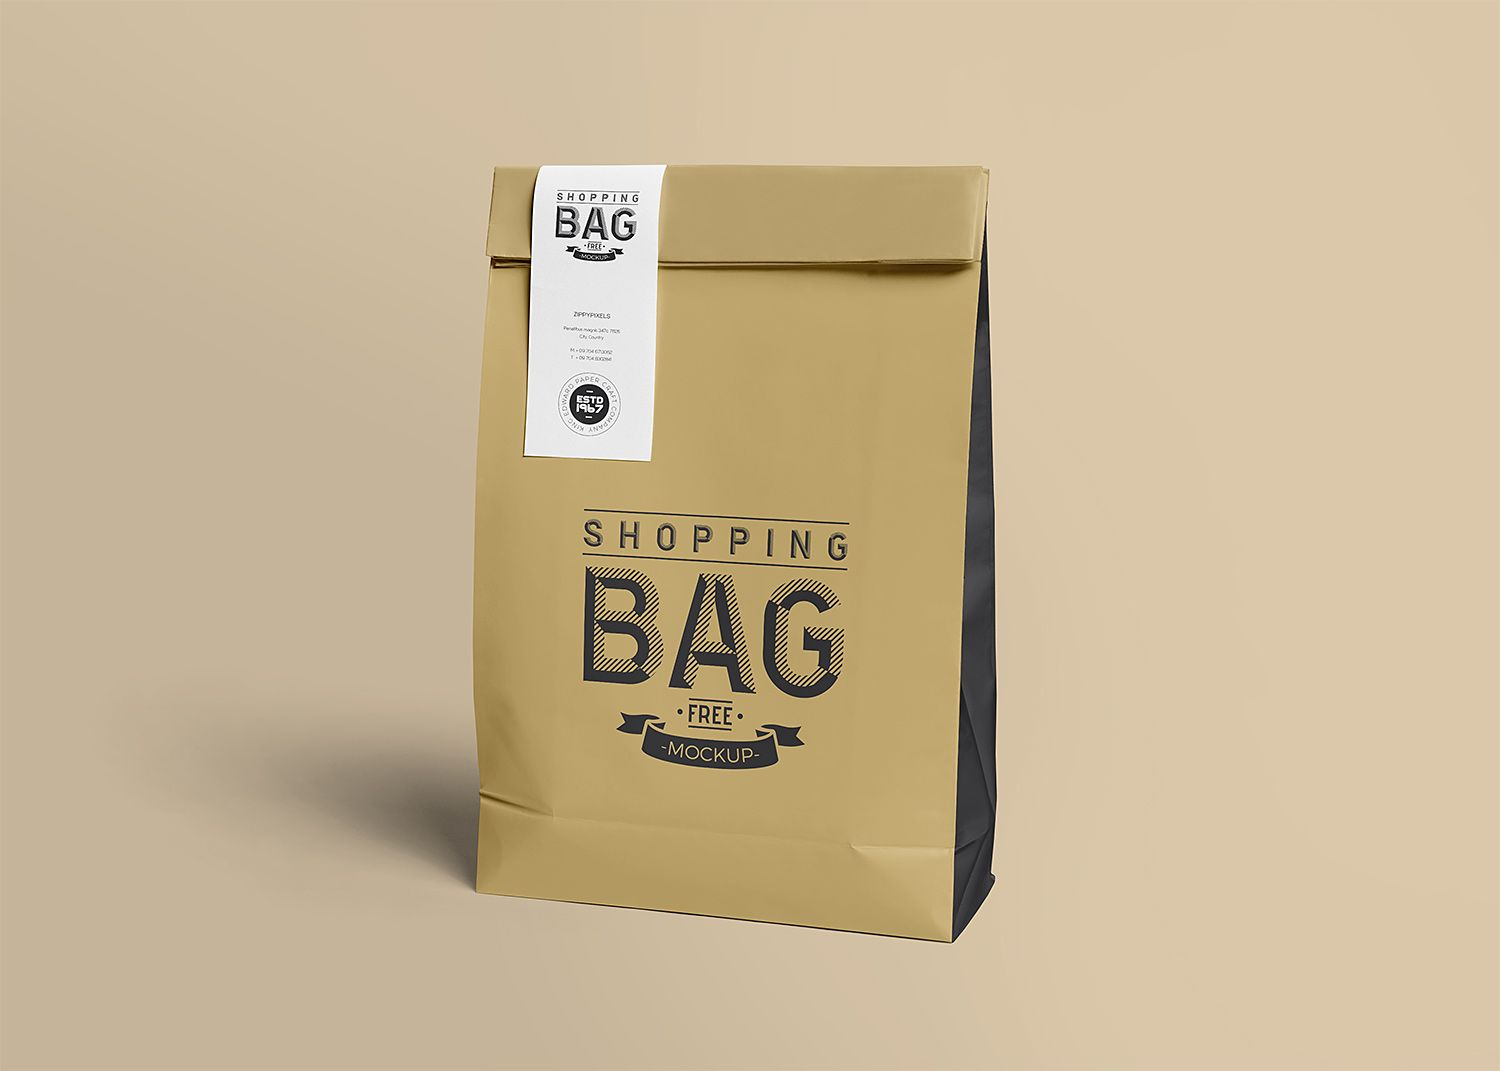 Download Food Delivery Paper Bag Free Mockup To Showcase Your Branding Packaging Design In A Photorealis Food Delivery Food Delivery Packaging Branding Design Packaging